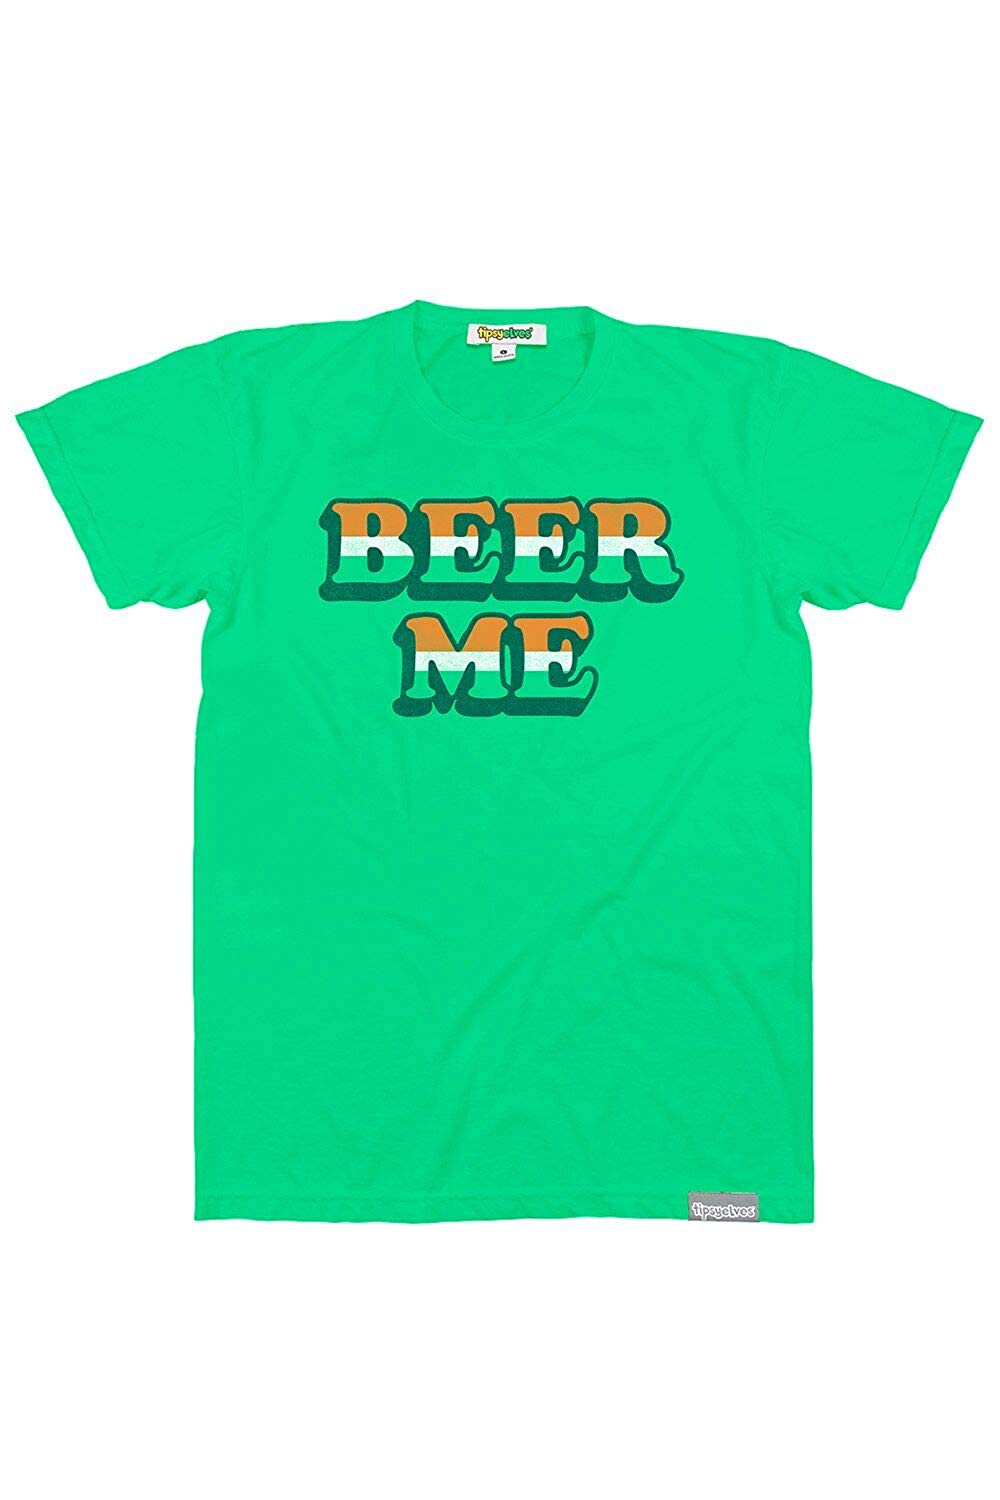 a15460fcd Amazon.com: Men's Funny St. Patrick's Day Shirts - St. Paddy's T-Shirts  Apparel for Guys: Clothing